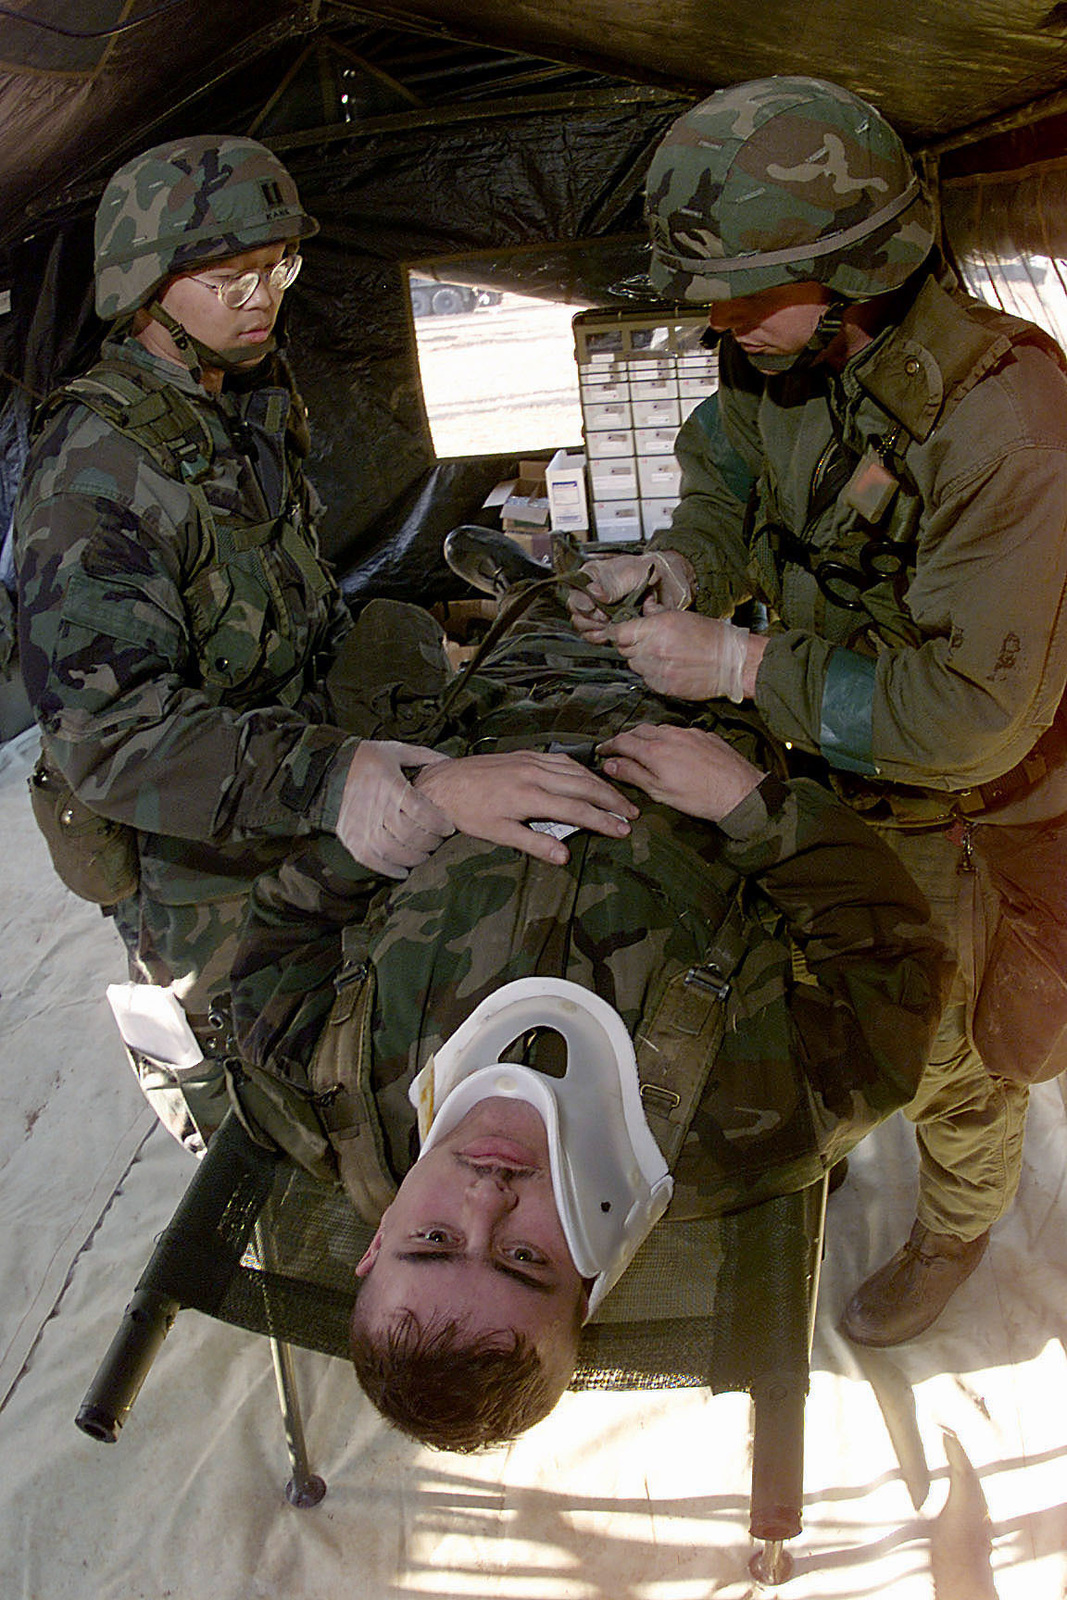 US Army members of the 52nd Medical Evacuation Battalion, Camp Humphries, South Korea, take part in a medical evacuation exercise during FOAL EAGLE 2000, on October 26th, 2000. FOAL EAGLE is the largest joint and combined field training drill conducted annually in South Korea, running from 25 October to 3 November. About 25,000 U.S. troops will take part in the drill, including active duty, Reserve and National Guard troops from bases in the United States and elsewhere in the Pacific. The exercise demonstrates U.S. and South Korean military cooperation